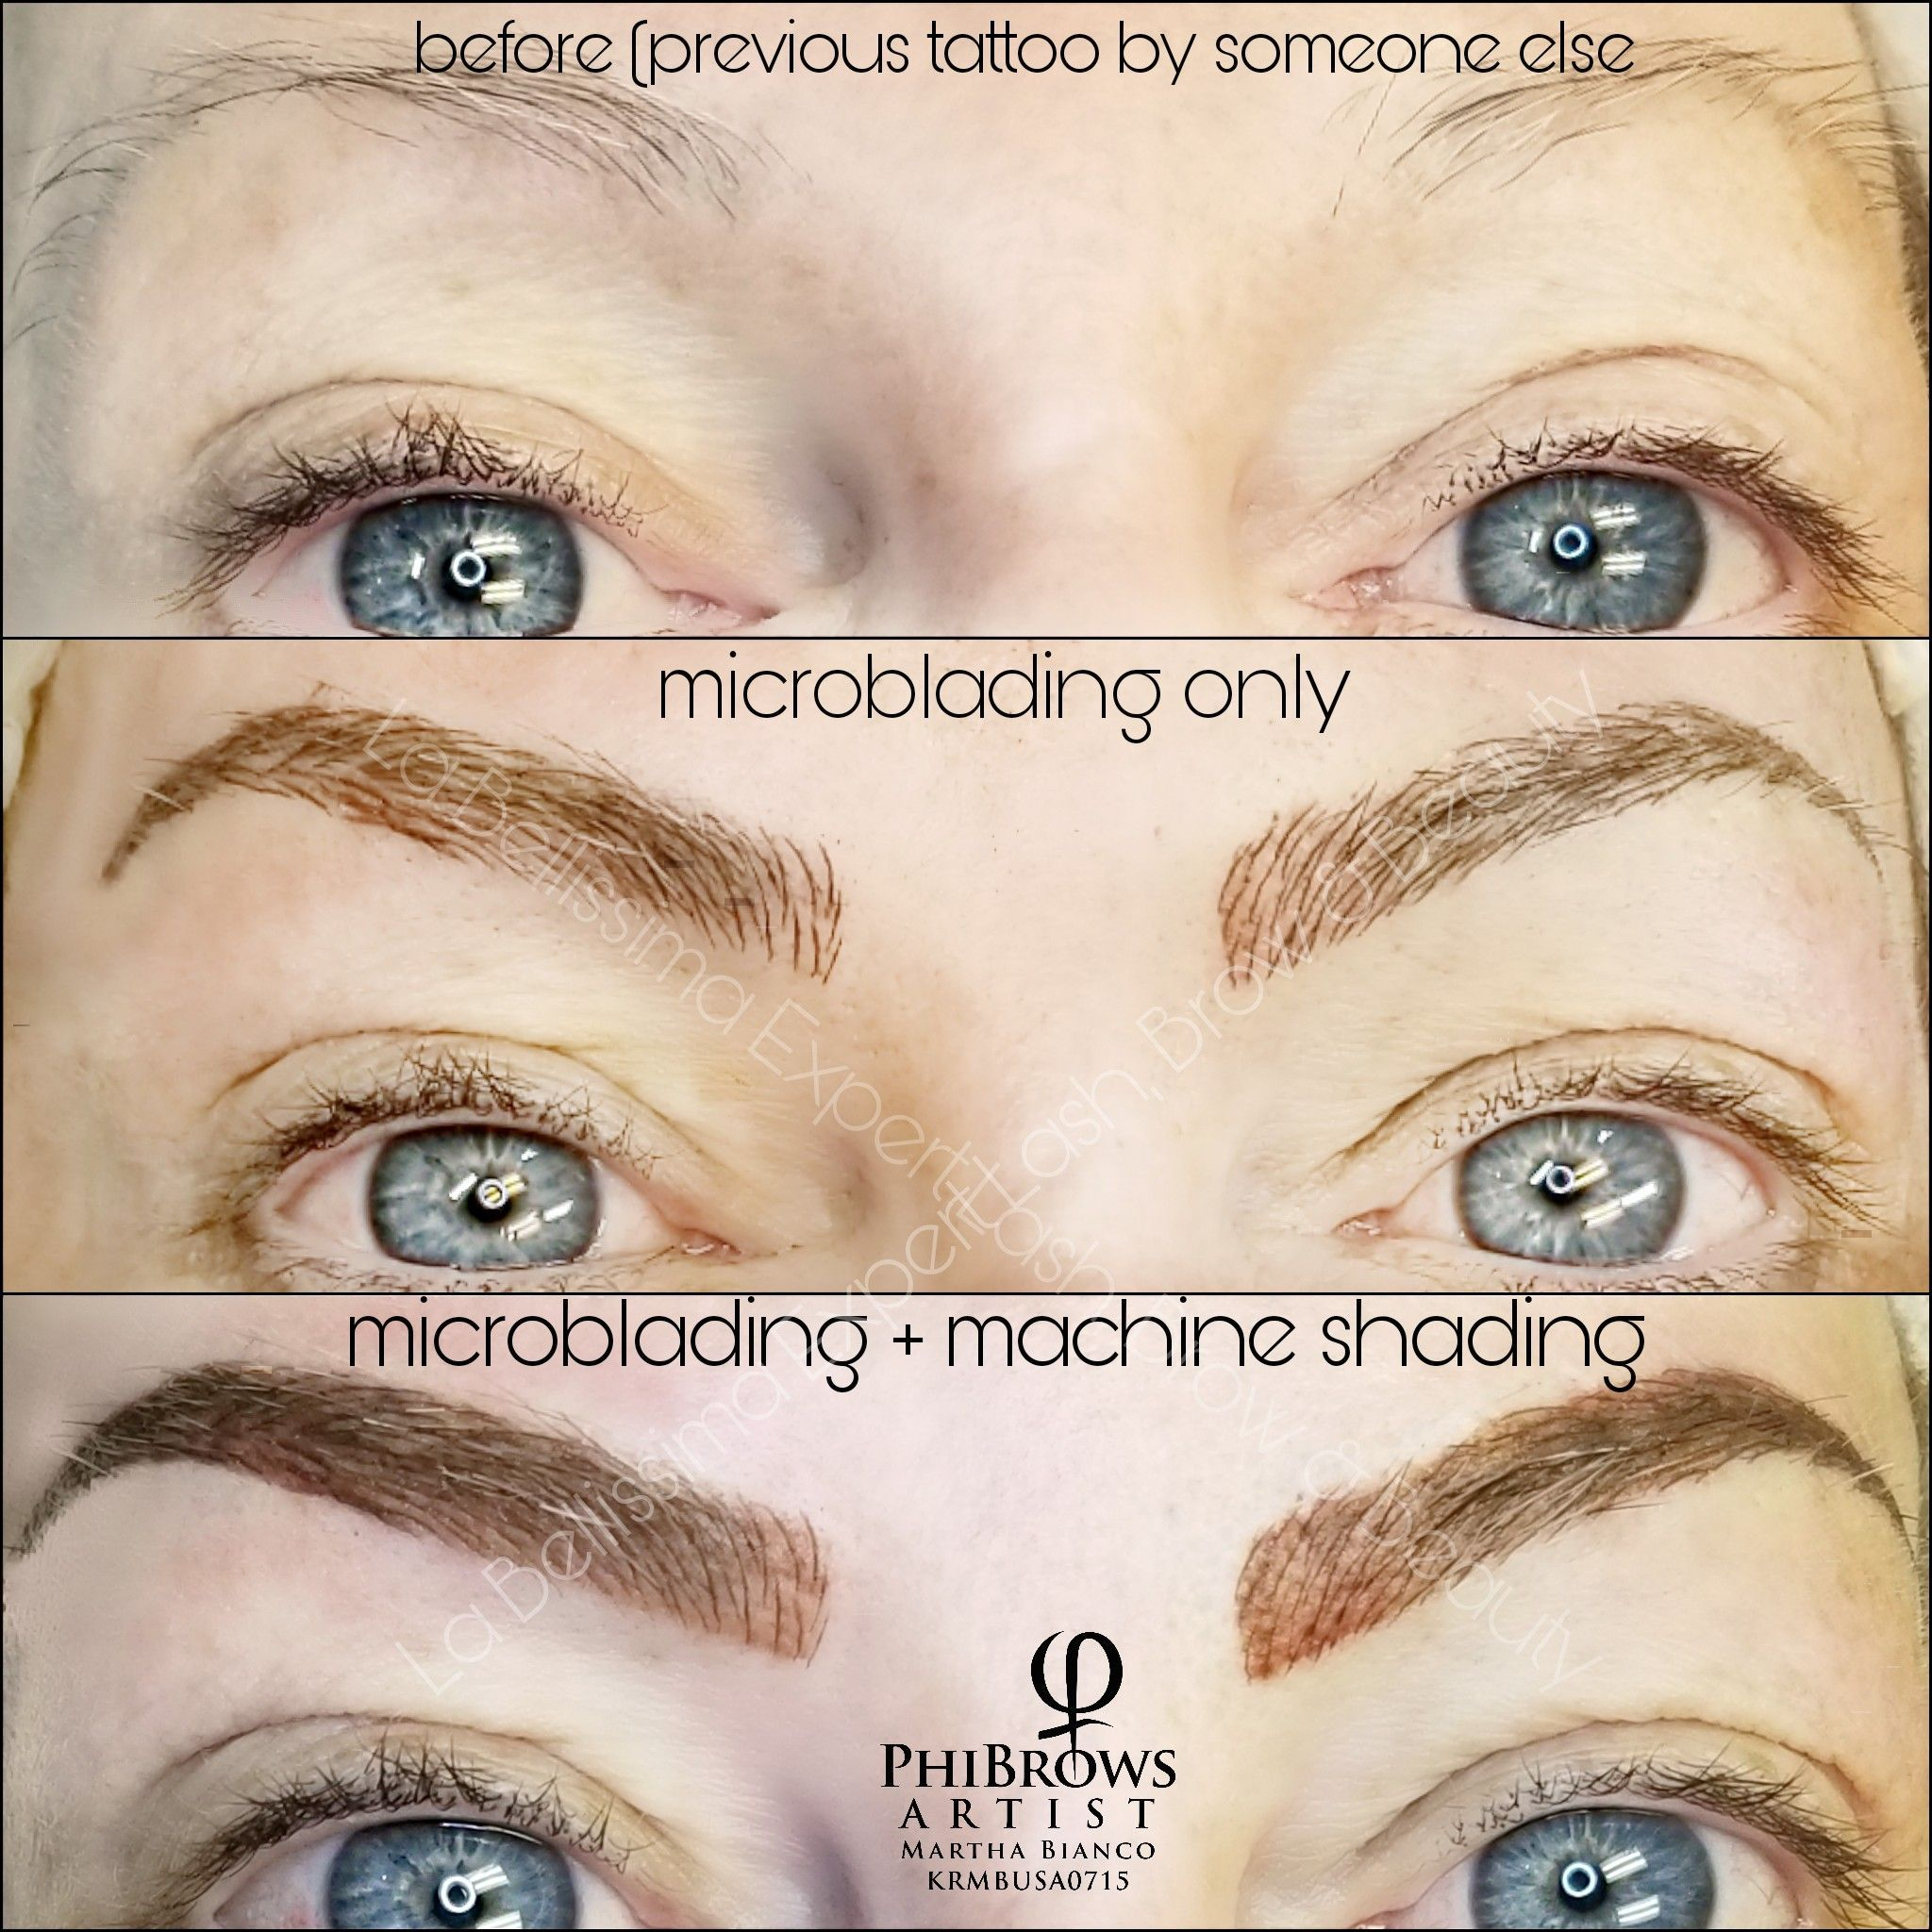 This series shows the difference between microblading only